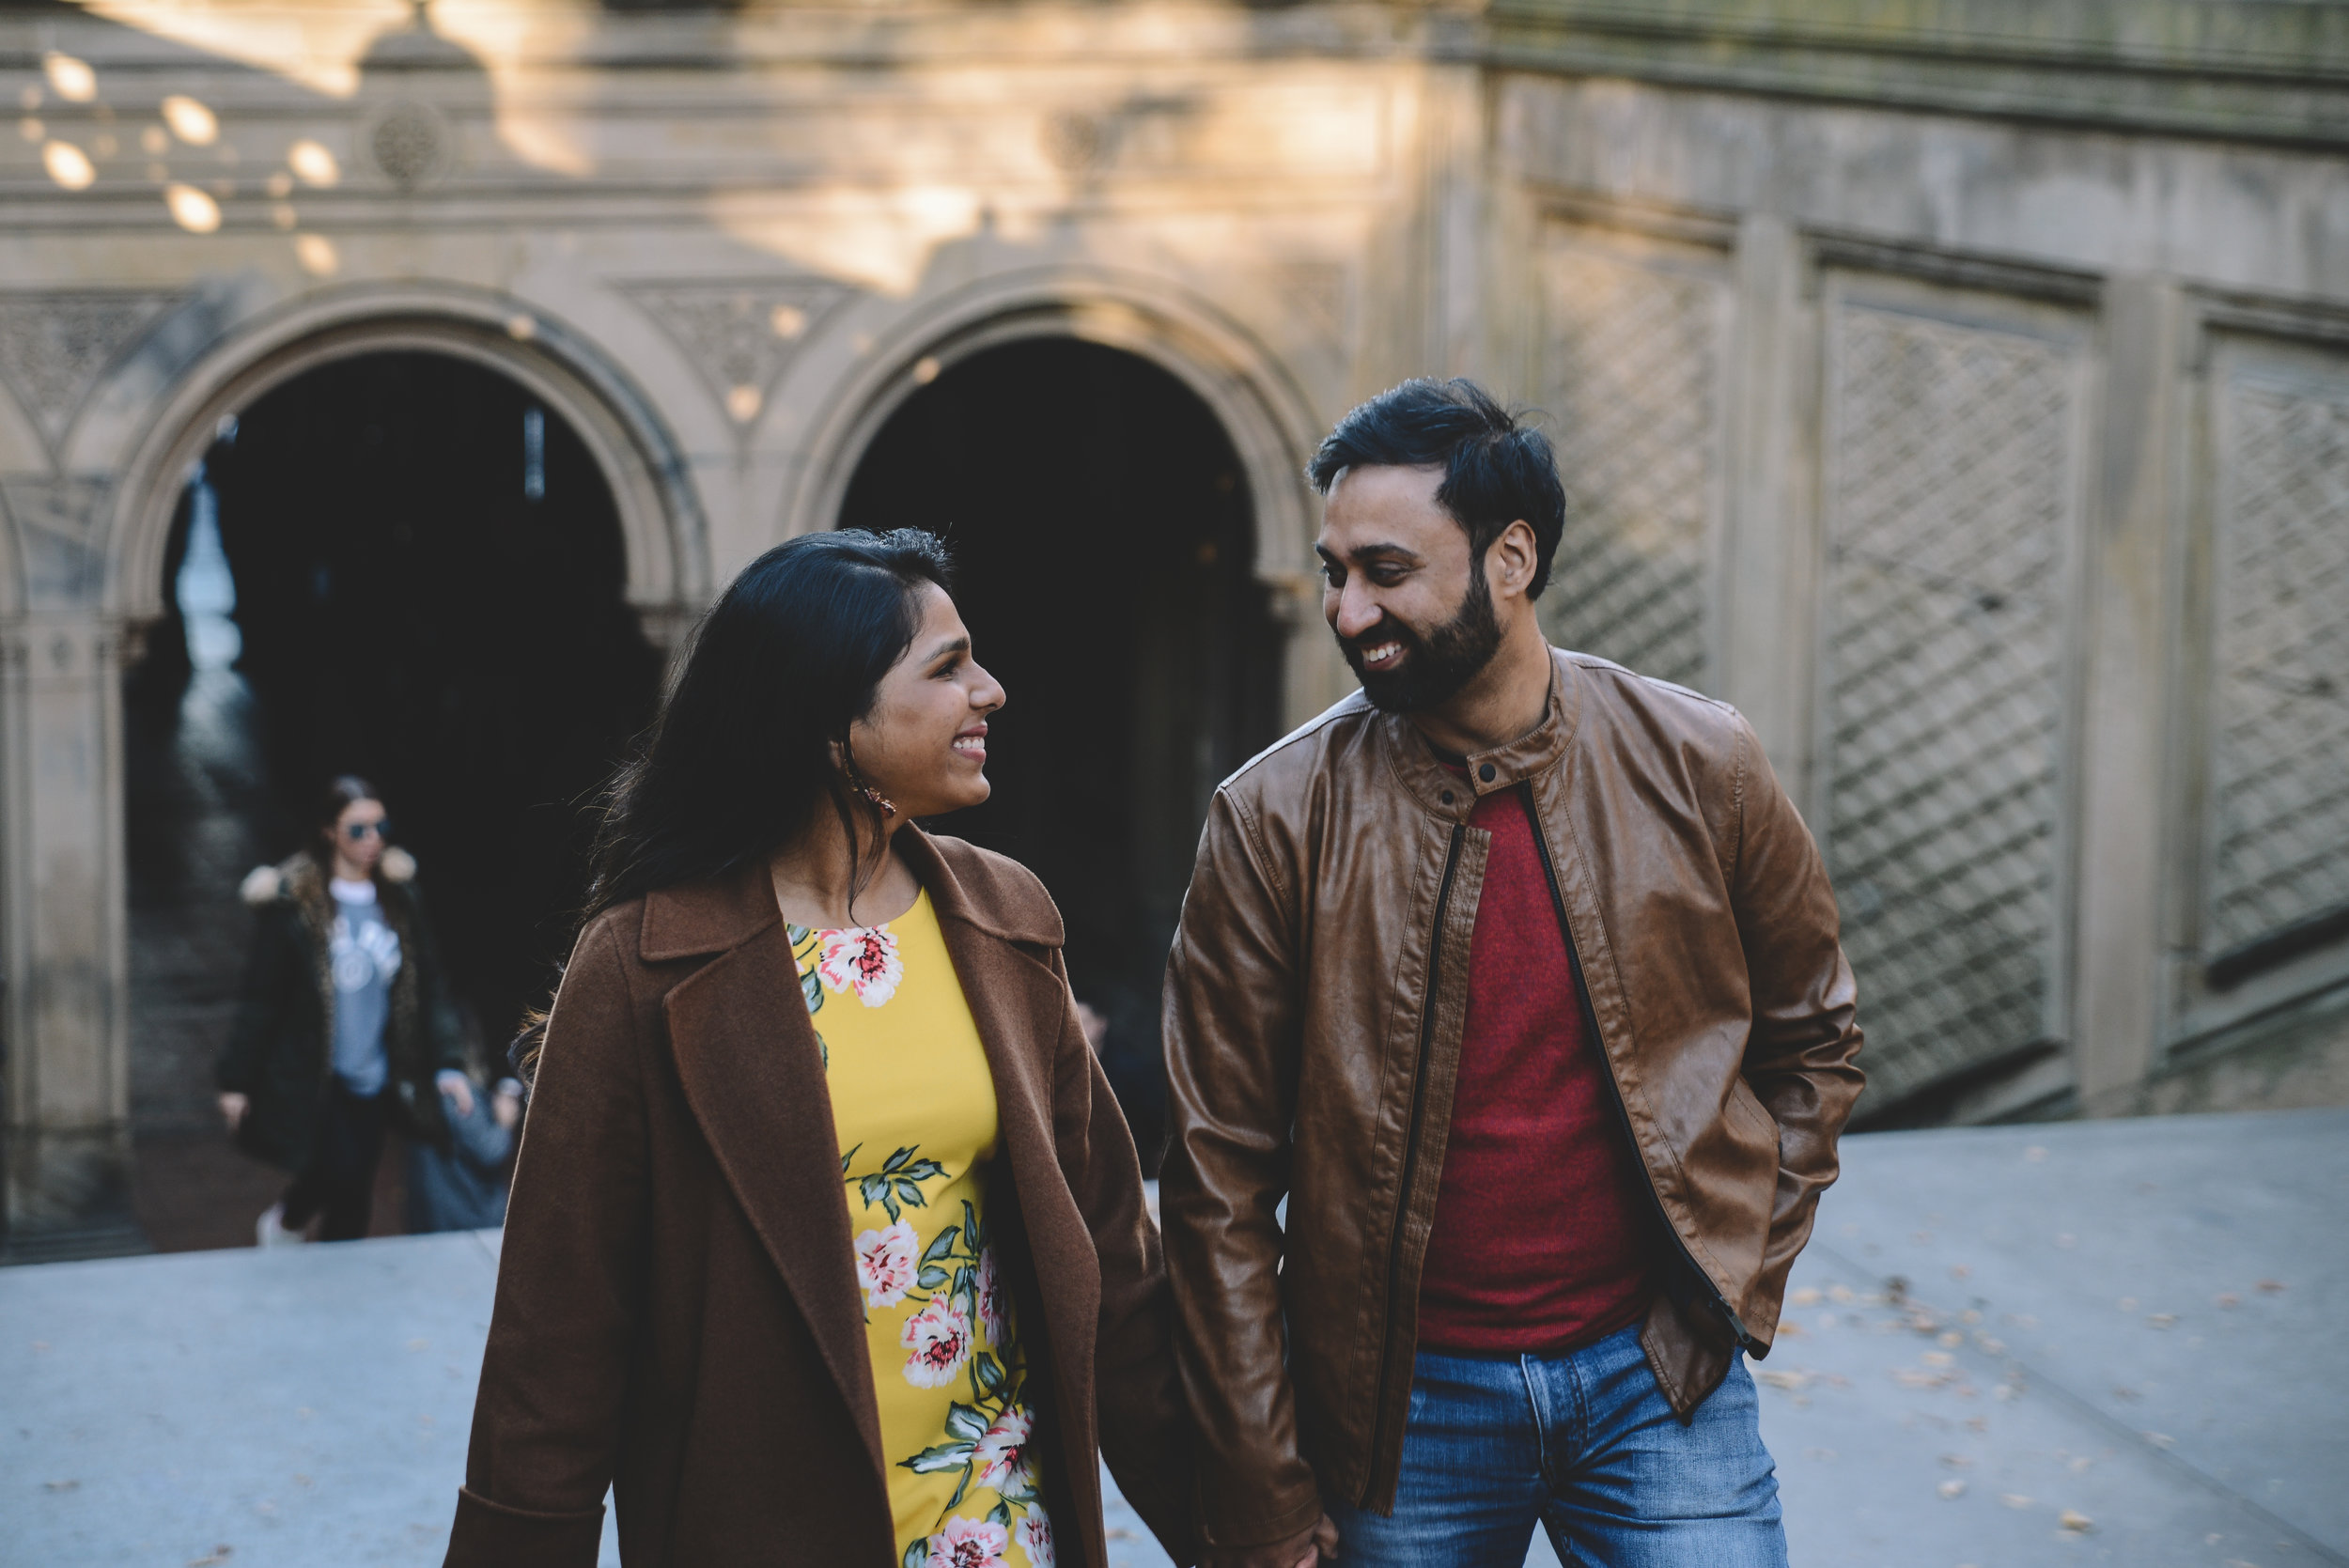 Rahul x Pooja x Central Park, New York